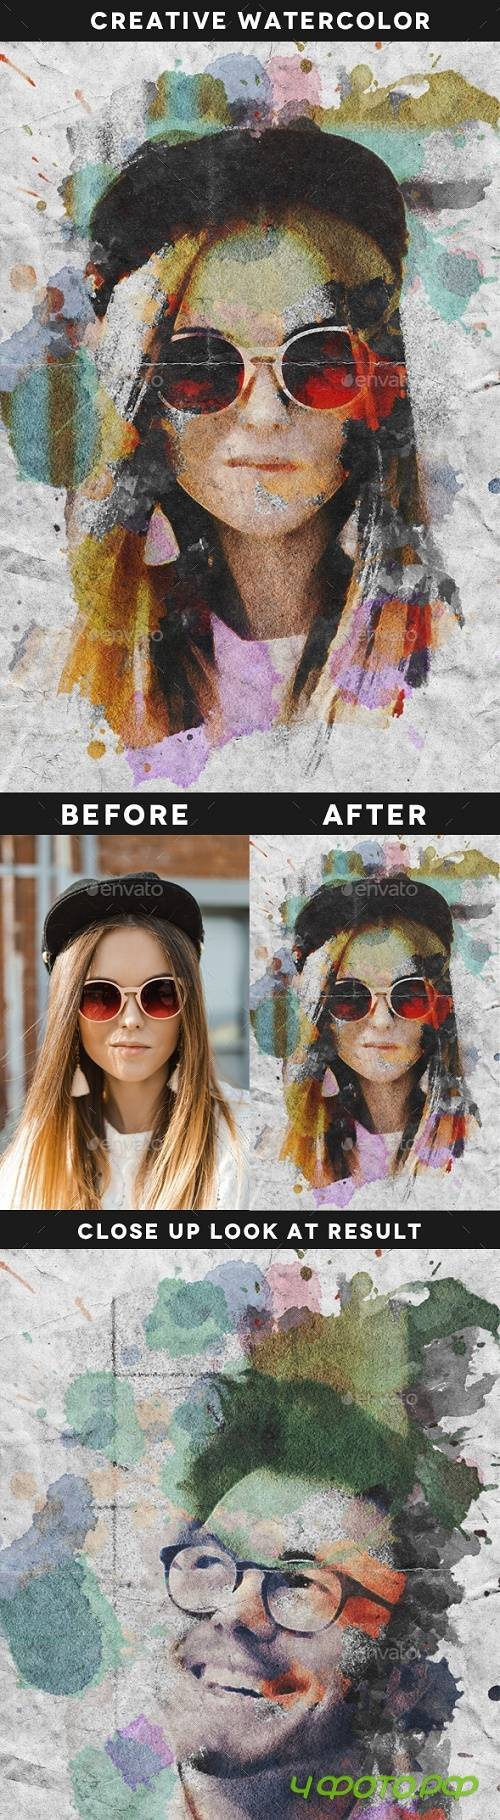 Creative Watercolor Portrait Template - 22111022